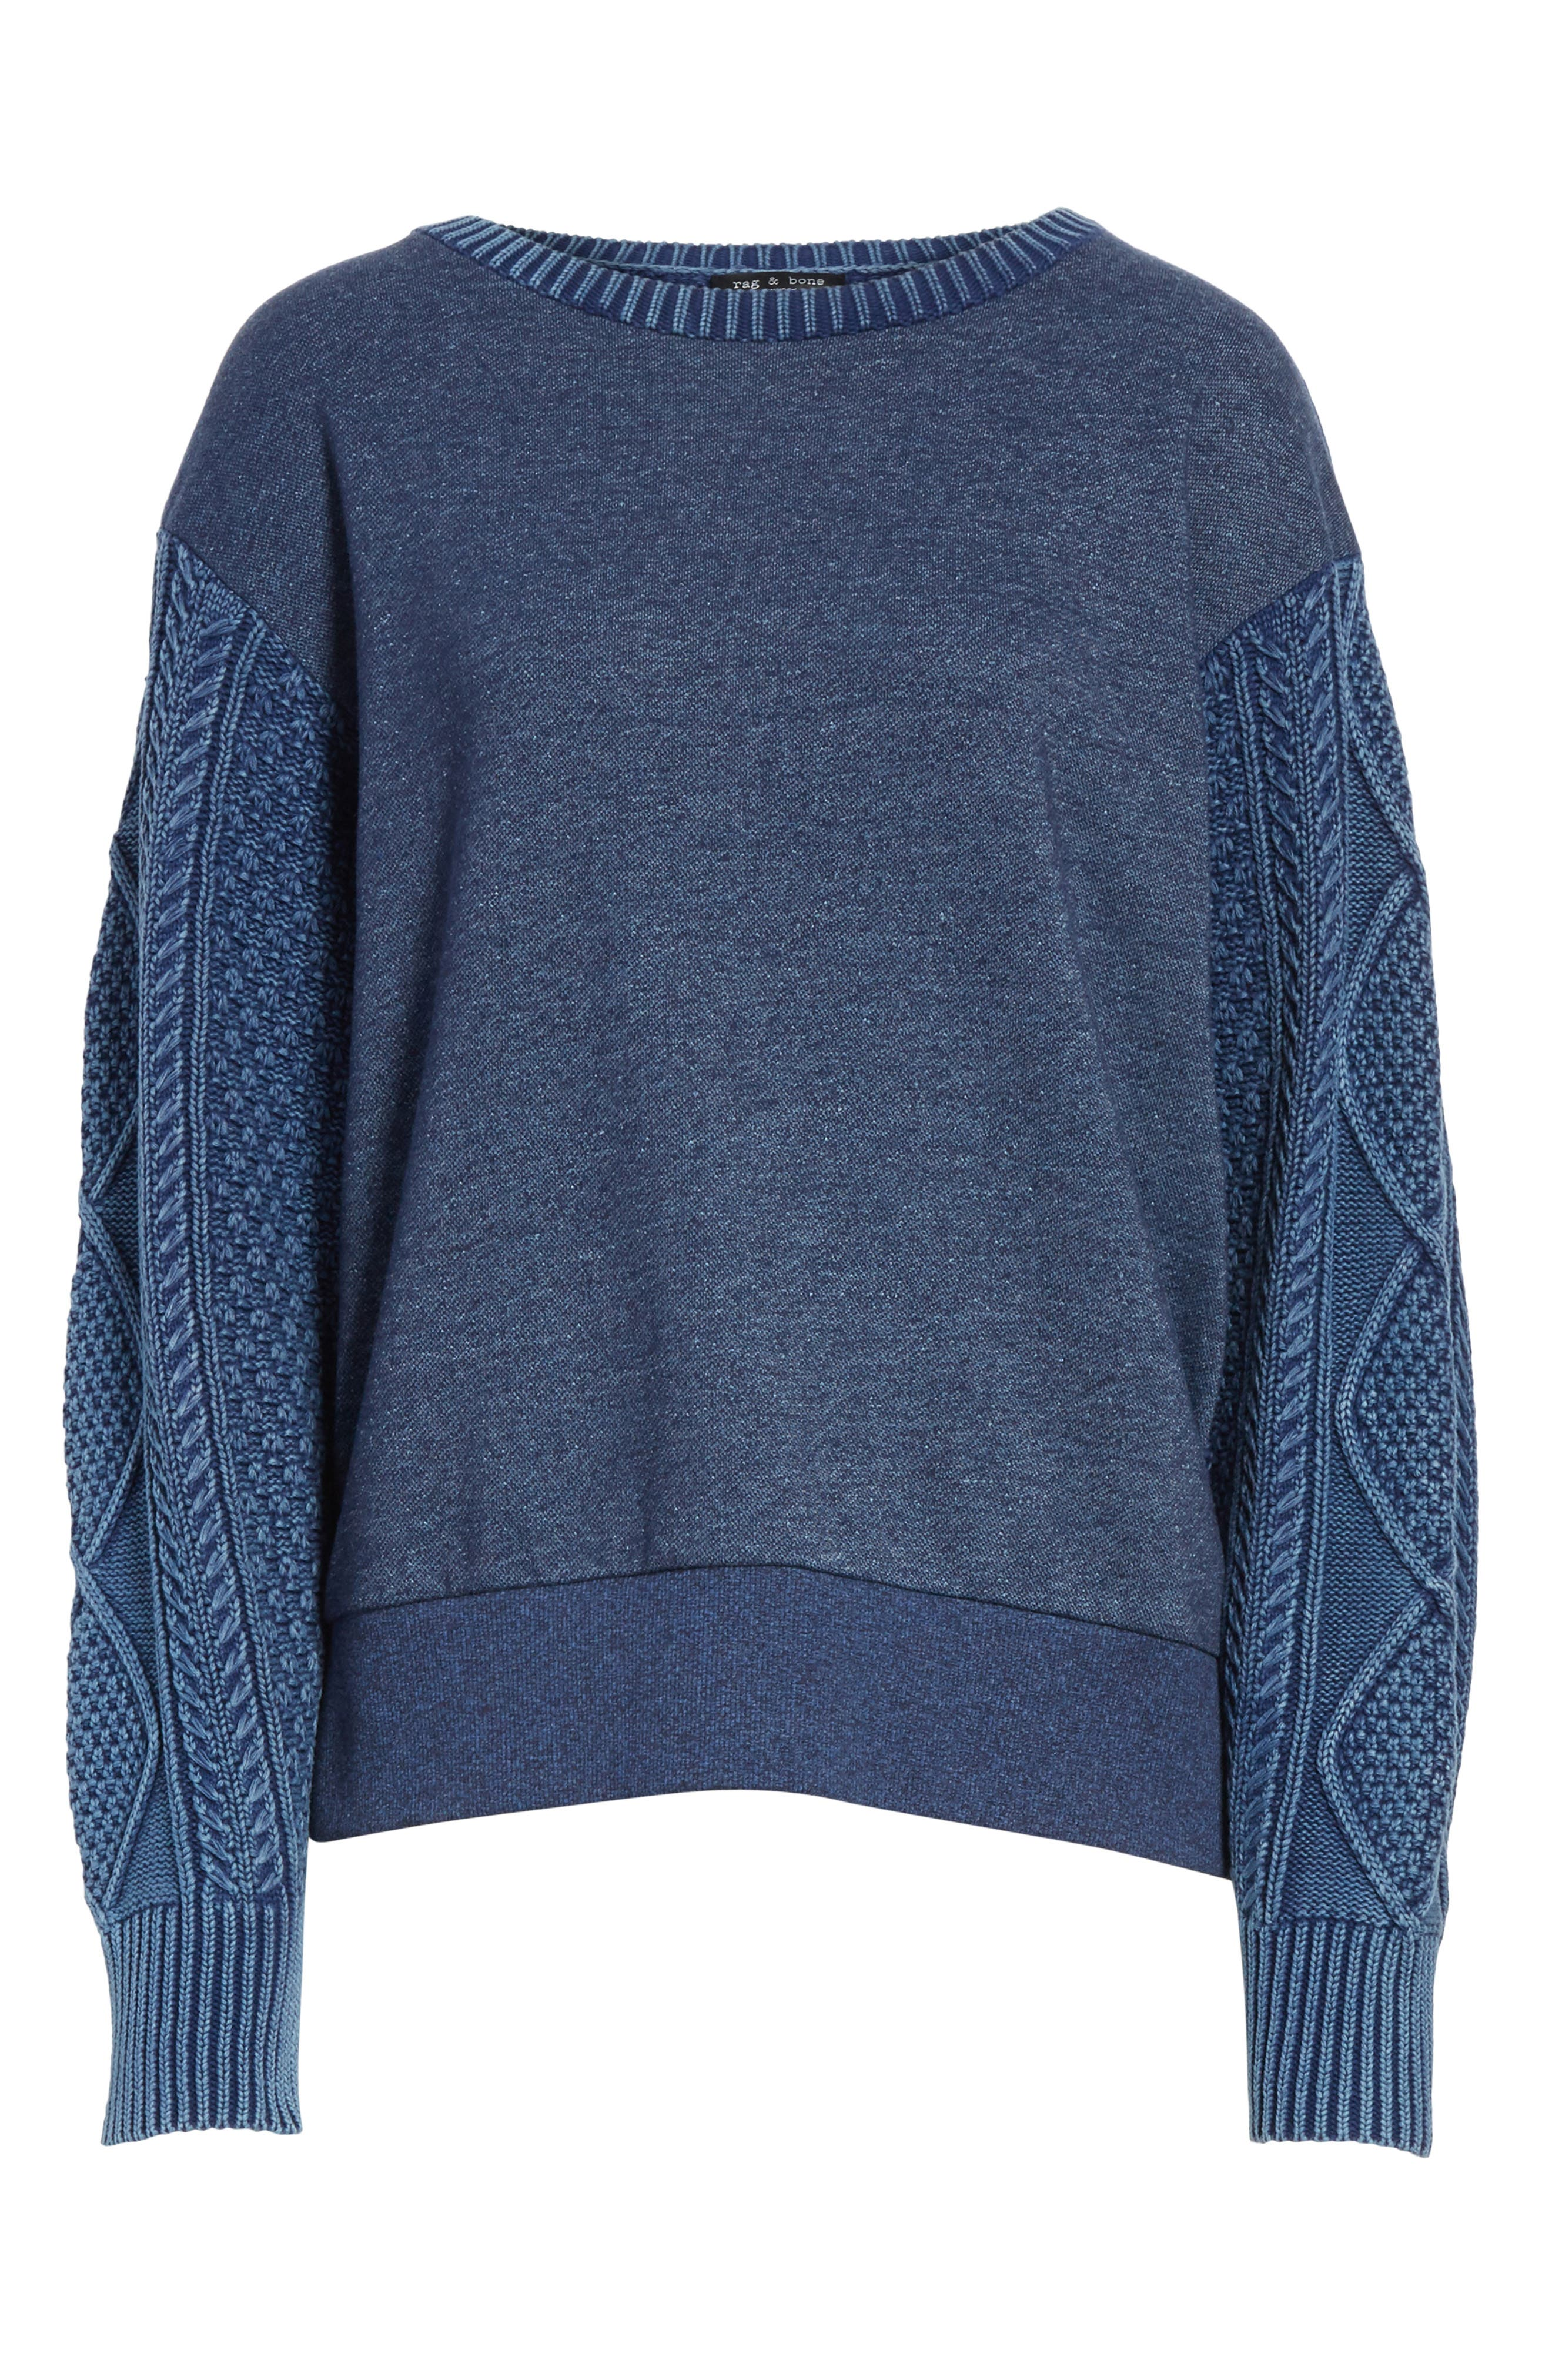 Harper Cable Knit Sweater,                             Alternate thumbnail 6, color,                             Indigo